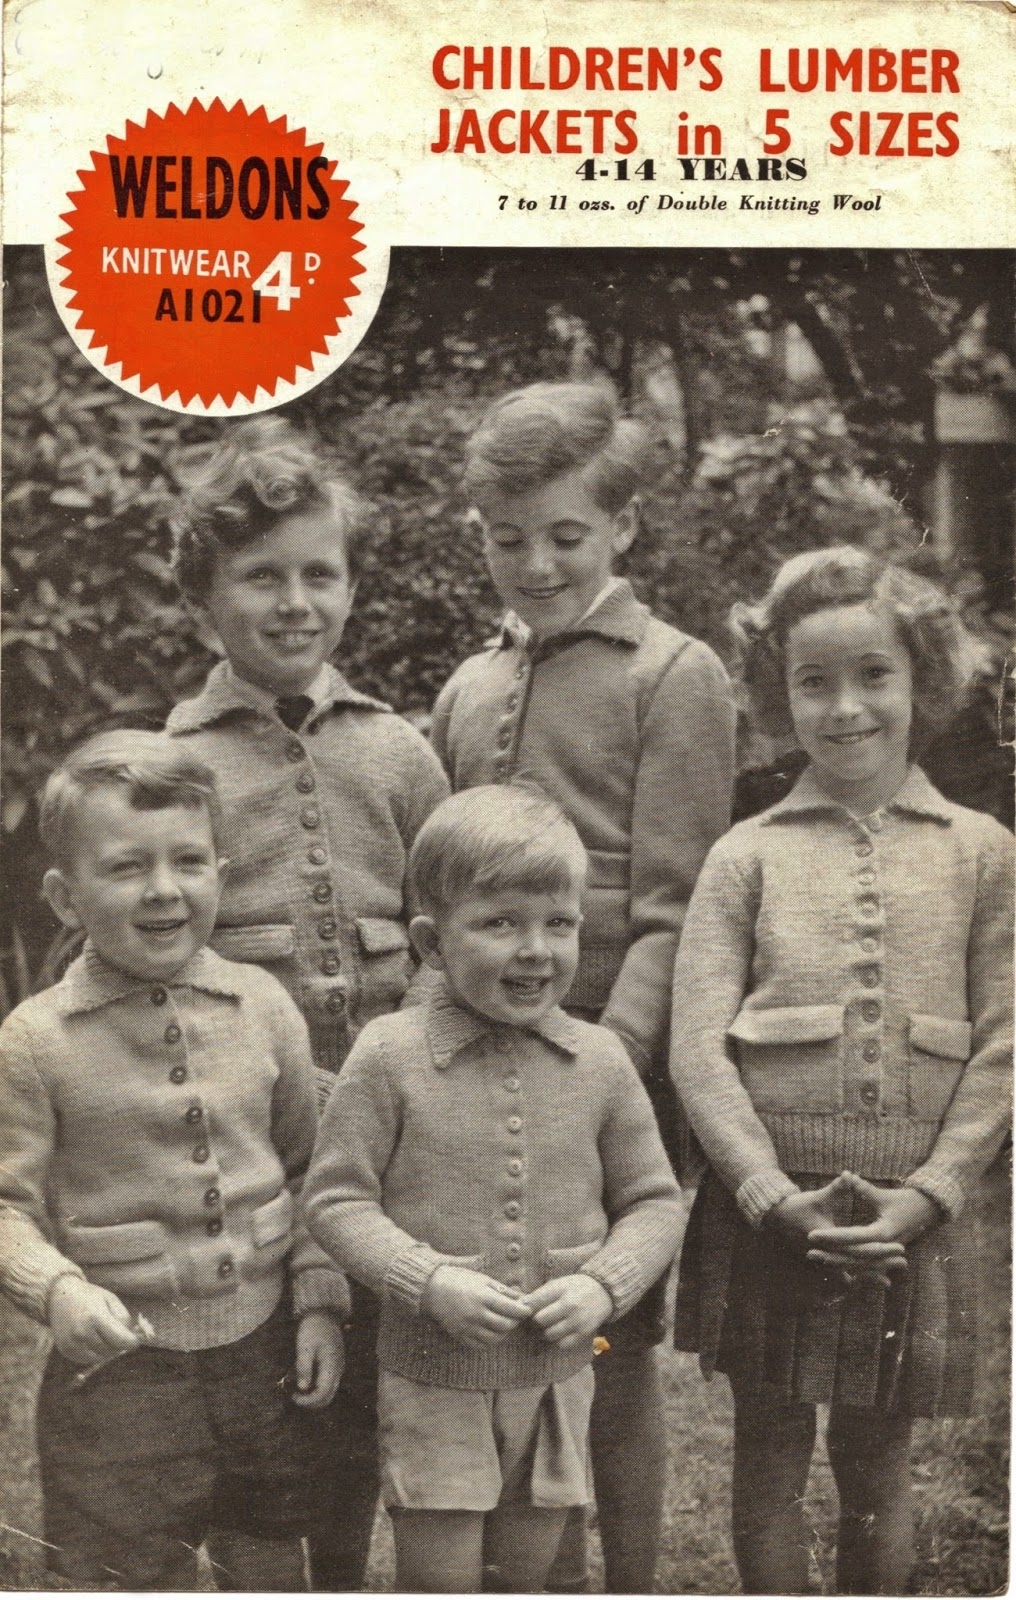 1940s knitting pattern for childrens jackets